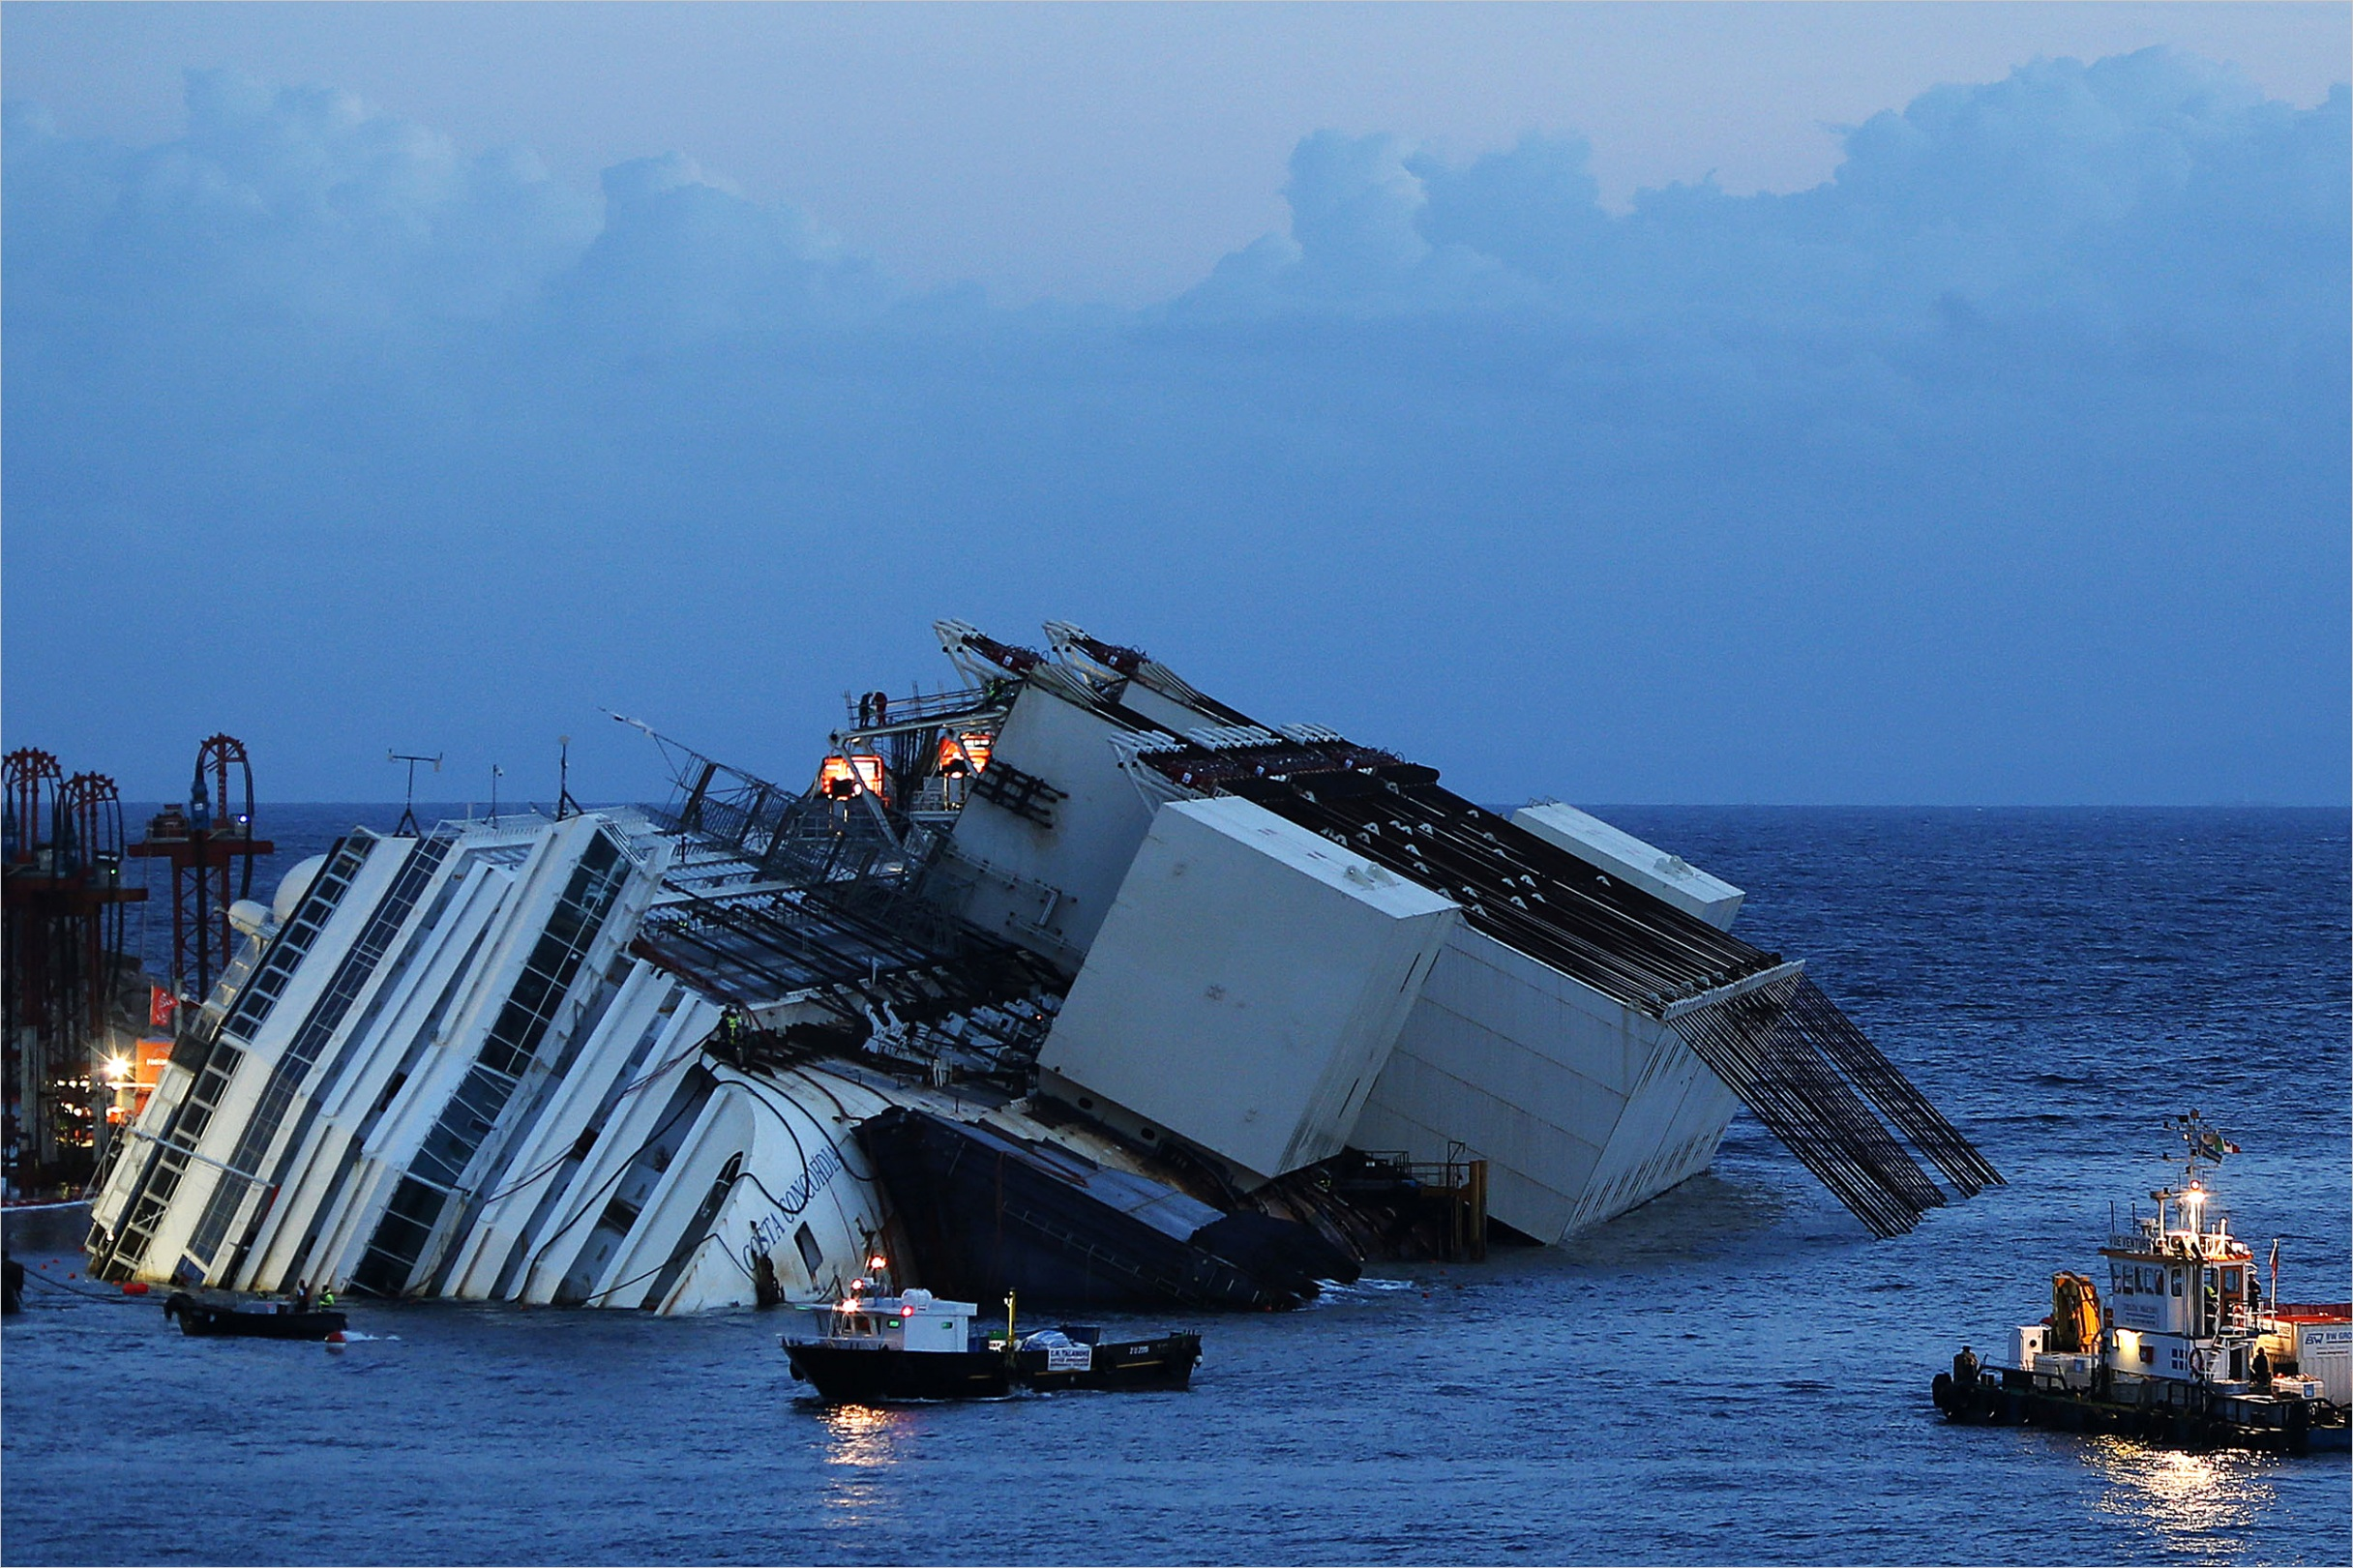 i survived a deadly shipwreck costa concordia passengers tell their stories